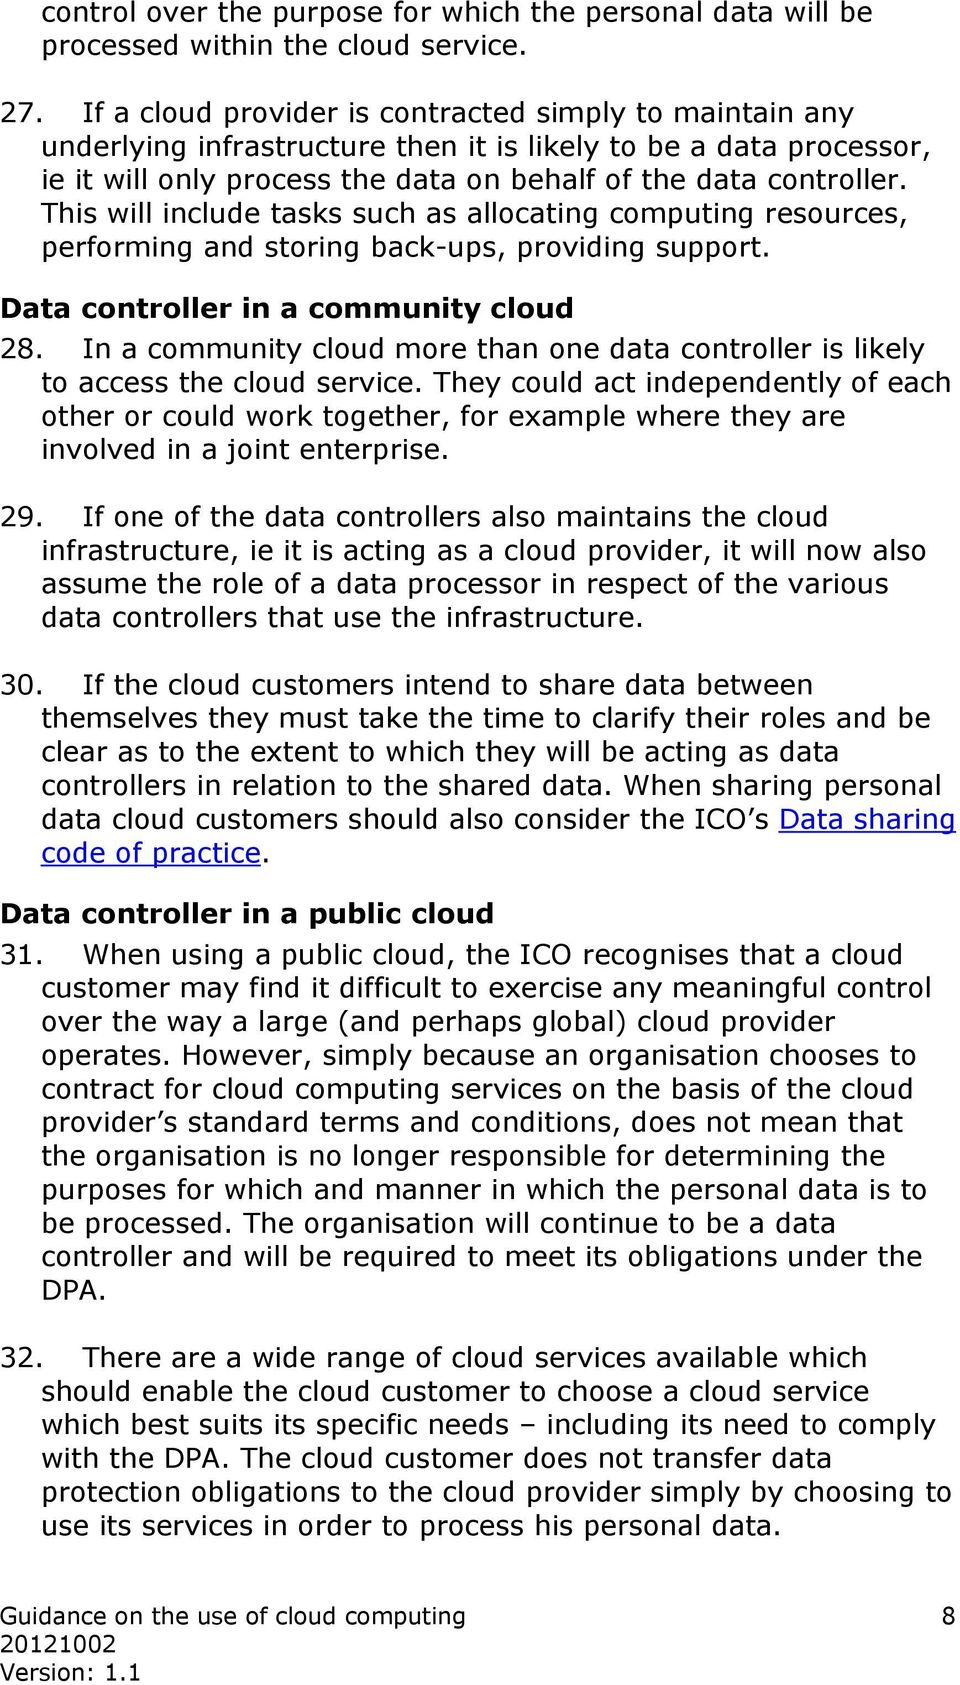 This will include tasks such as allocating computing resources, performing and storing back-ups, providing support. Data controller in a community cloud 28.